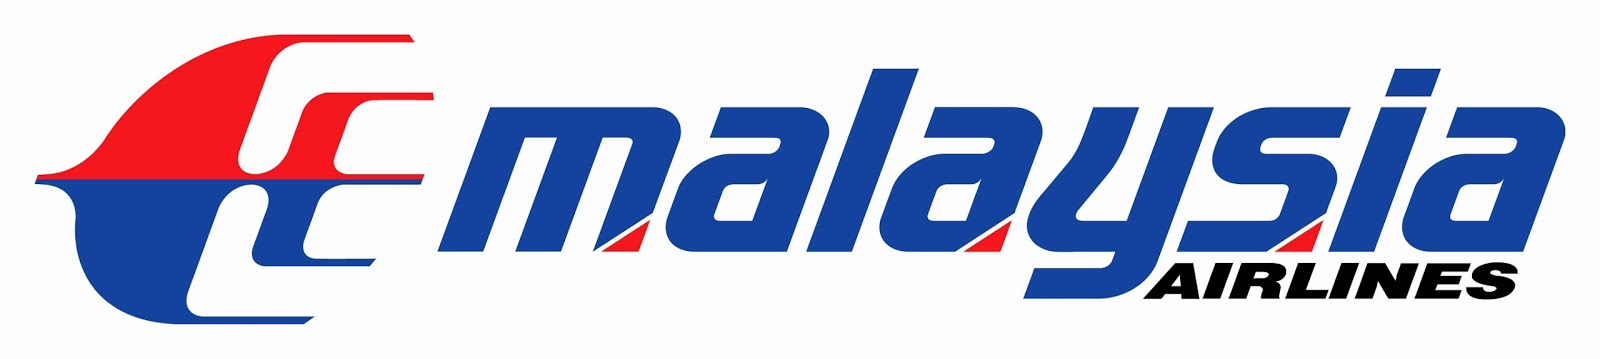 airlines microeconomics Microeconomics thursday, 24 october 2013 mas airlines logo: introduction malaysia airlines system berhad (mas) is currently a globally well-known high quality air travelling service in which the company is worth over billions today it is the holding company for malaysia's national airline carrier and is also recognized as one of asia's.